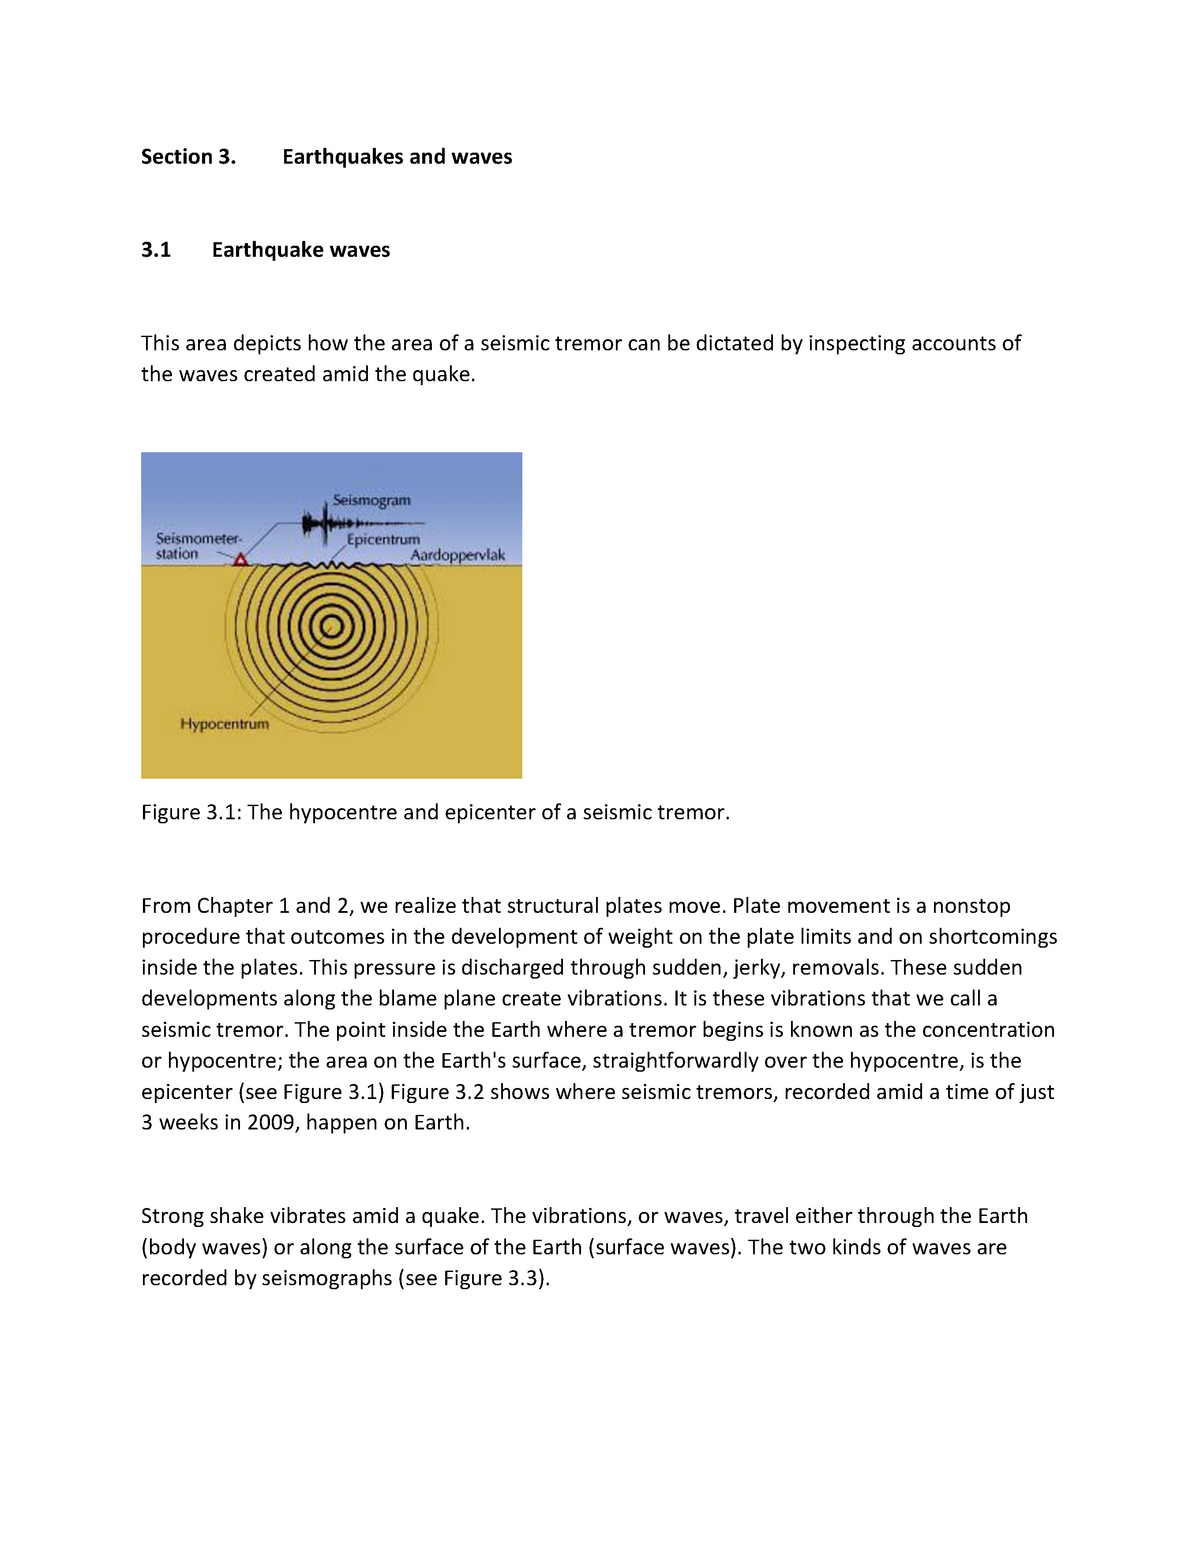 earthquakes and waves - lecture notes 4-5 - glg 111: the dynamic earth -  studocu